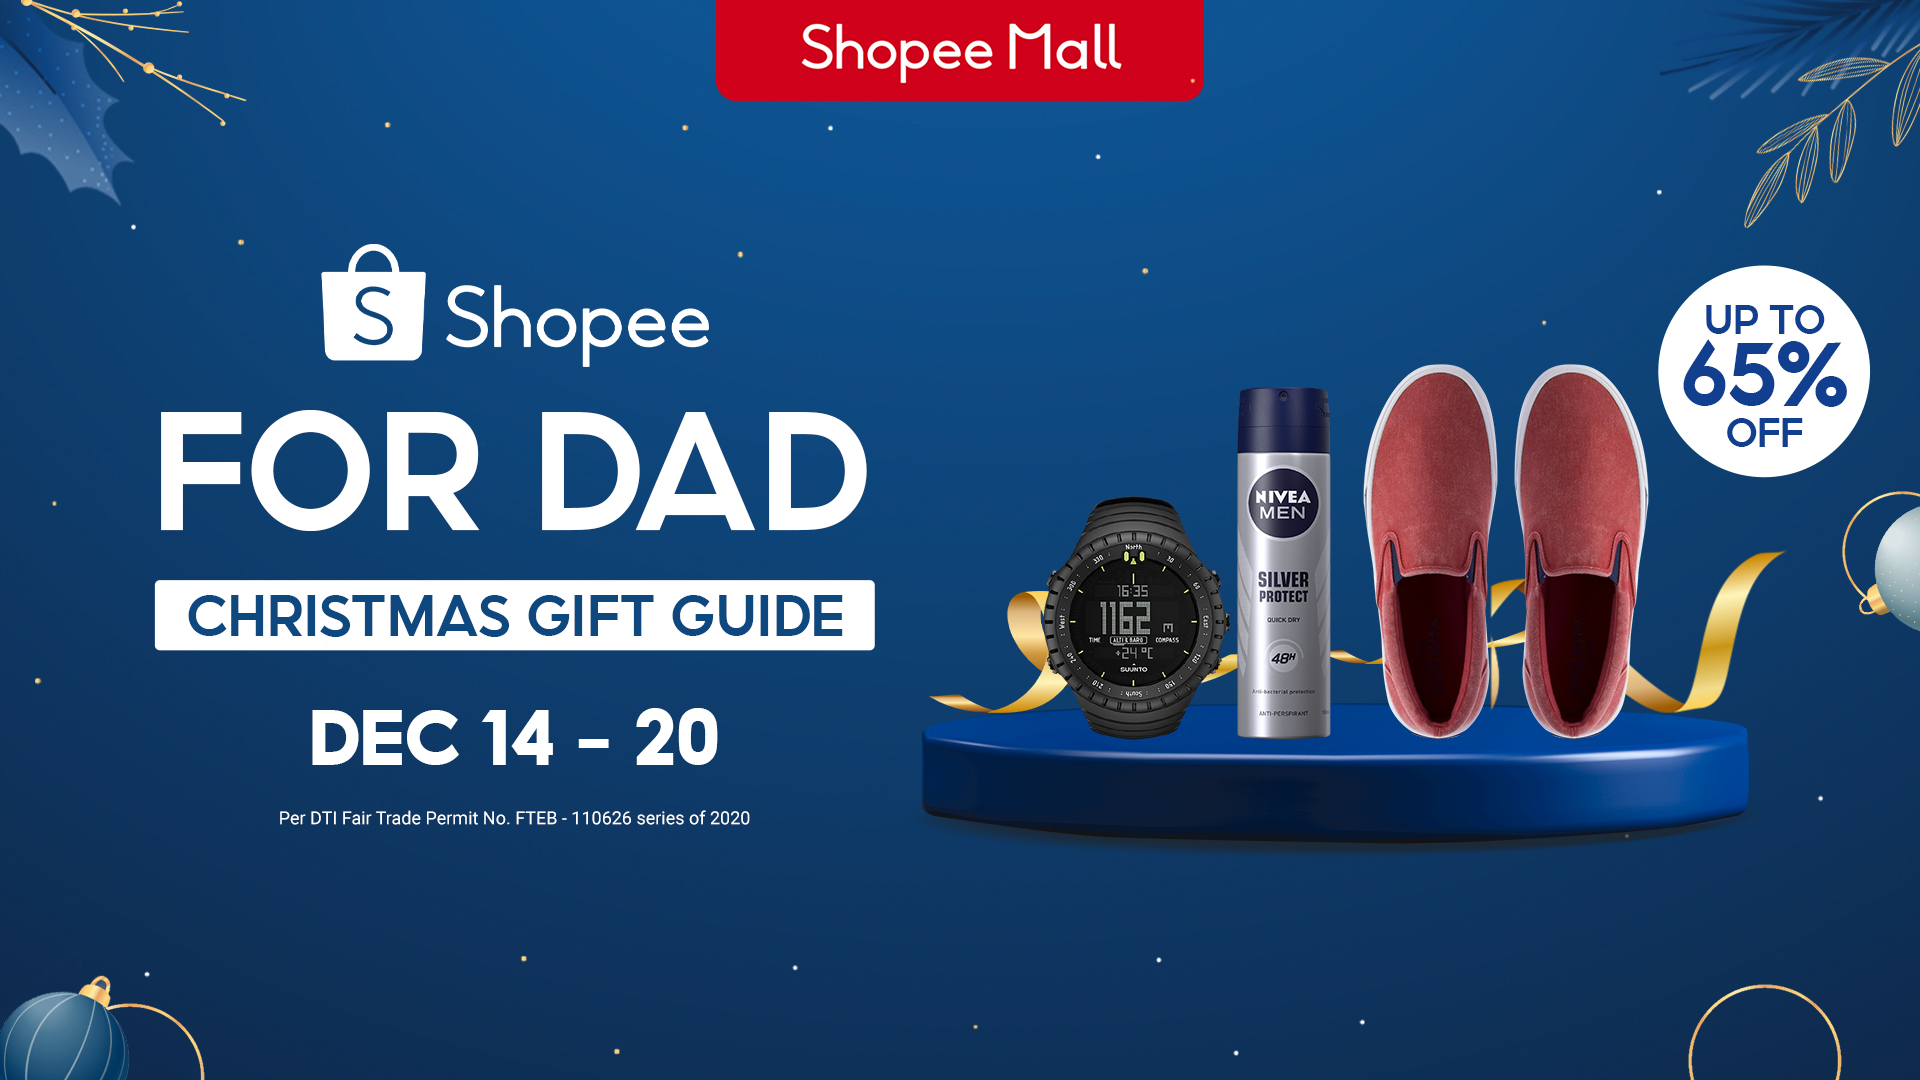 Shopee is offering discounts up to 65% off on the best gifts for dad this Christmas